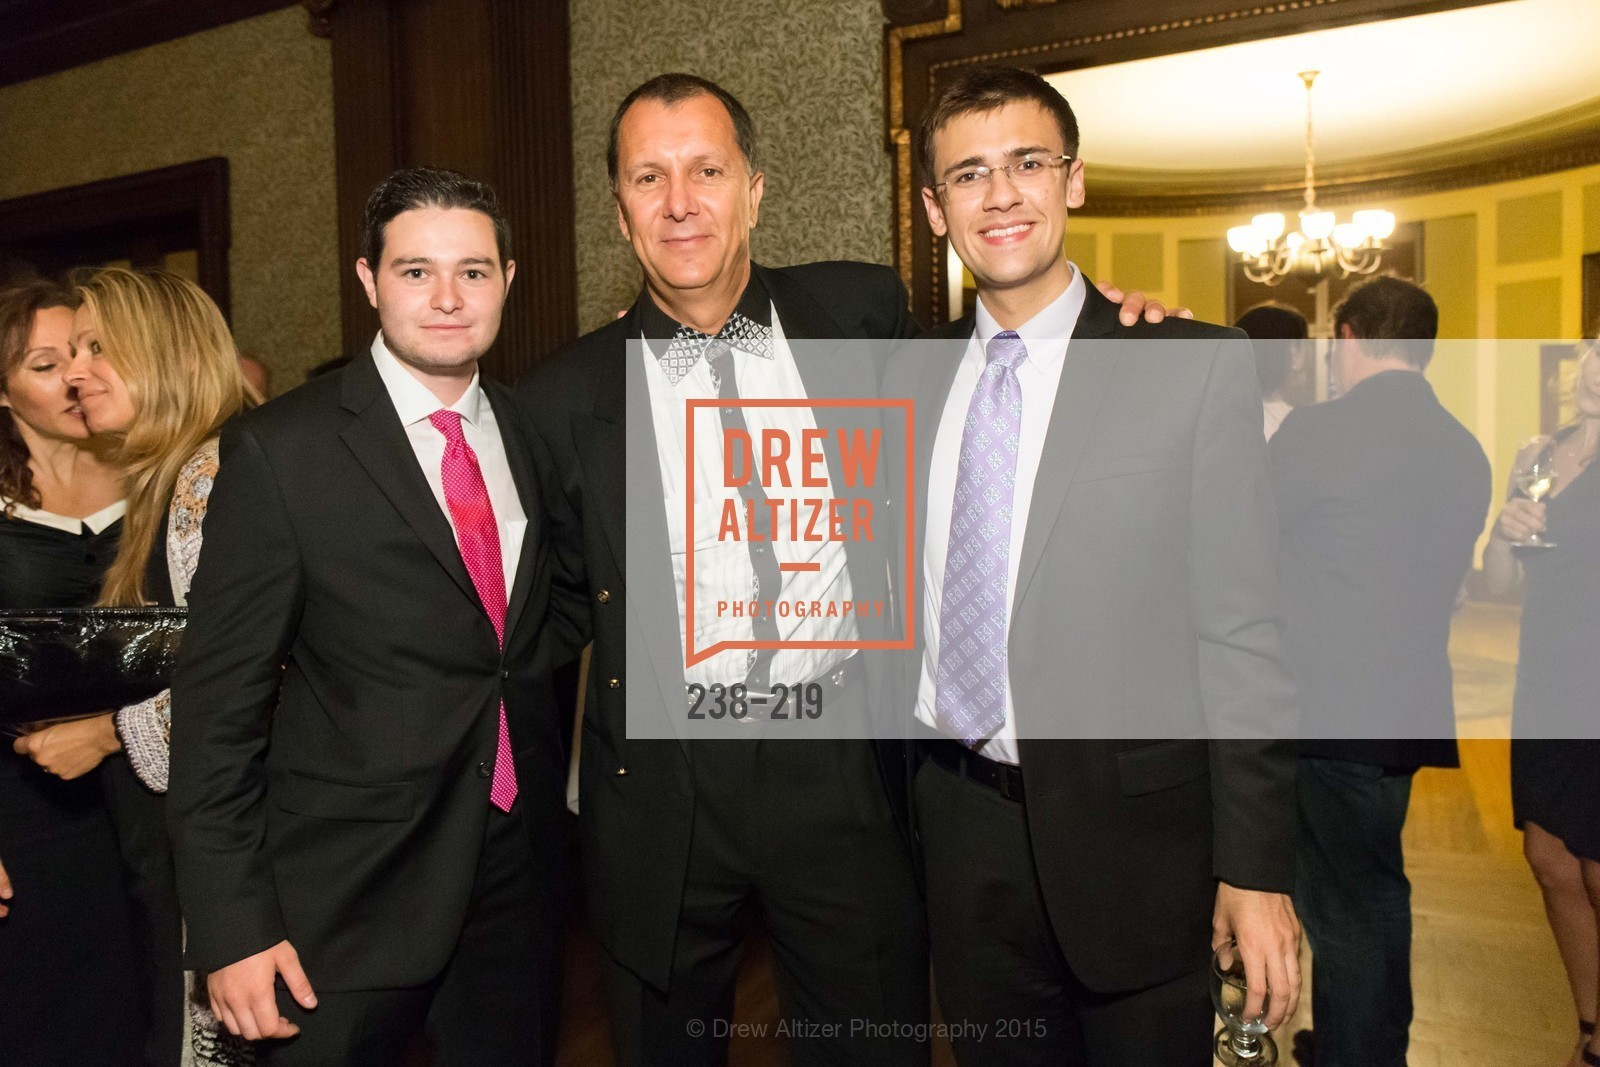 Pierre Laury, Patrick Renaus, Arro Hedrick Smith, Champagne Reception & Screening of Million Dollar Listing San Francisco, University Club. 800 Powell St, August 5th, 2015,Drew Altizer, Drew Altizer Photography, full-service agency, private events, San Francisco photographer, photographer california